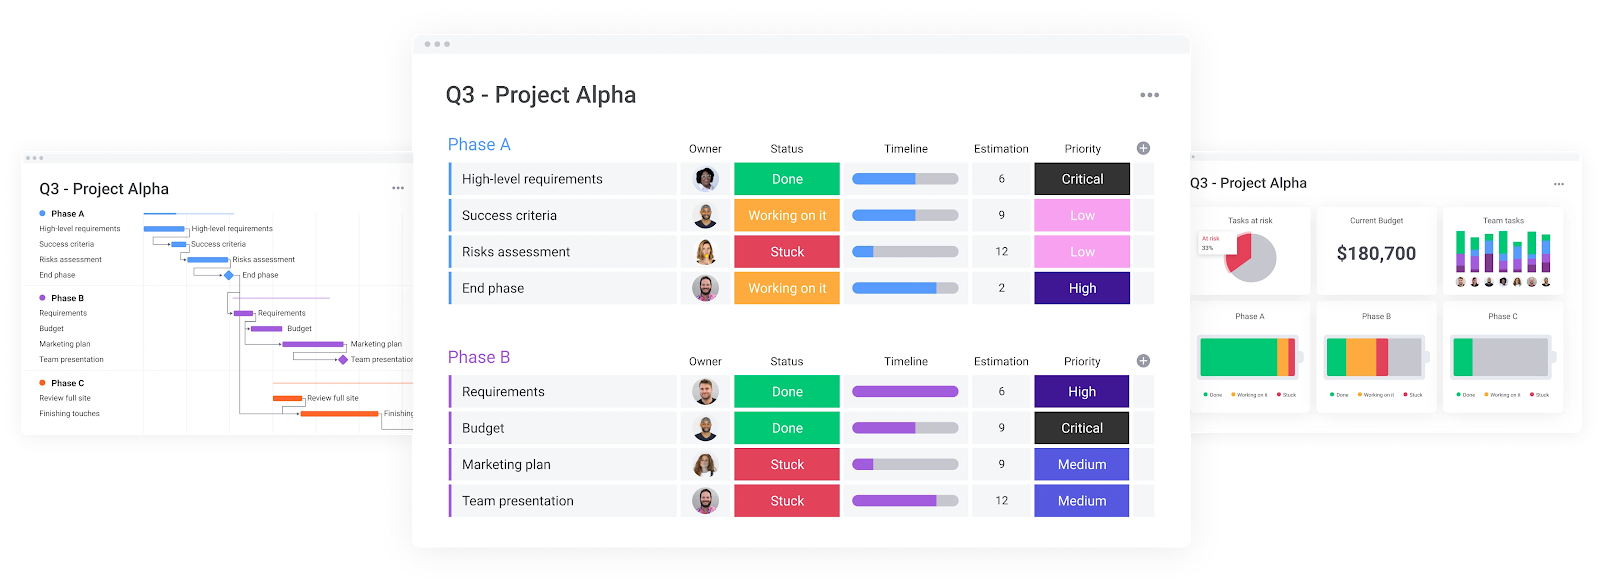 monday.com allows users to organize their entire project in one central location.